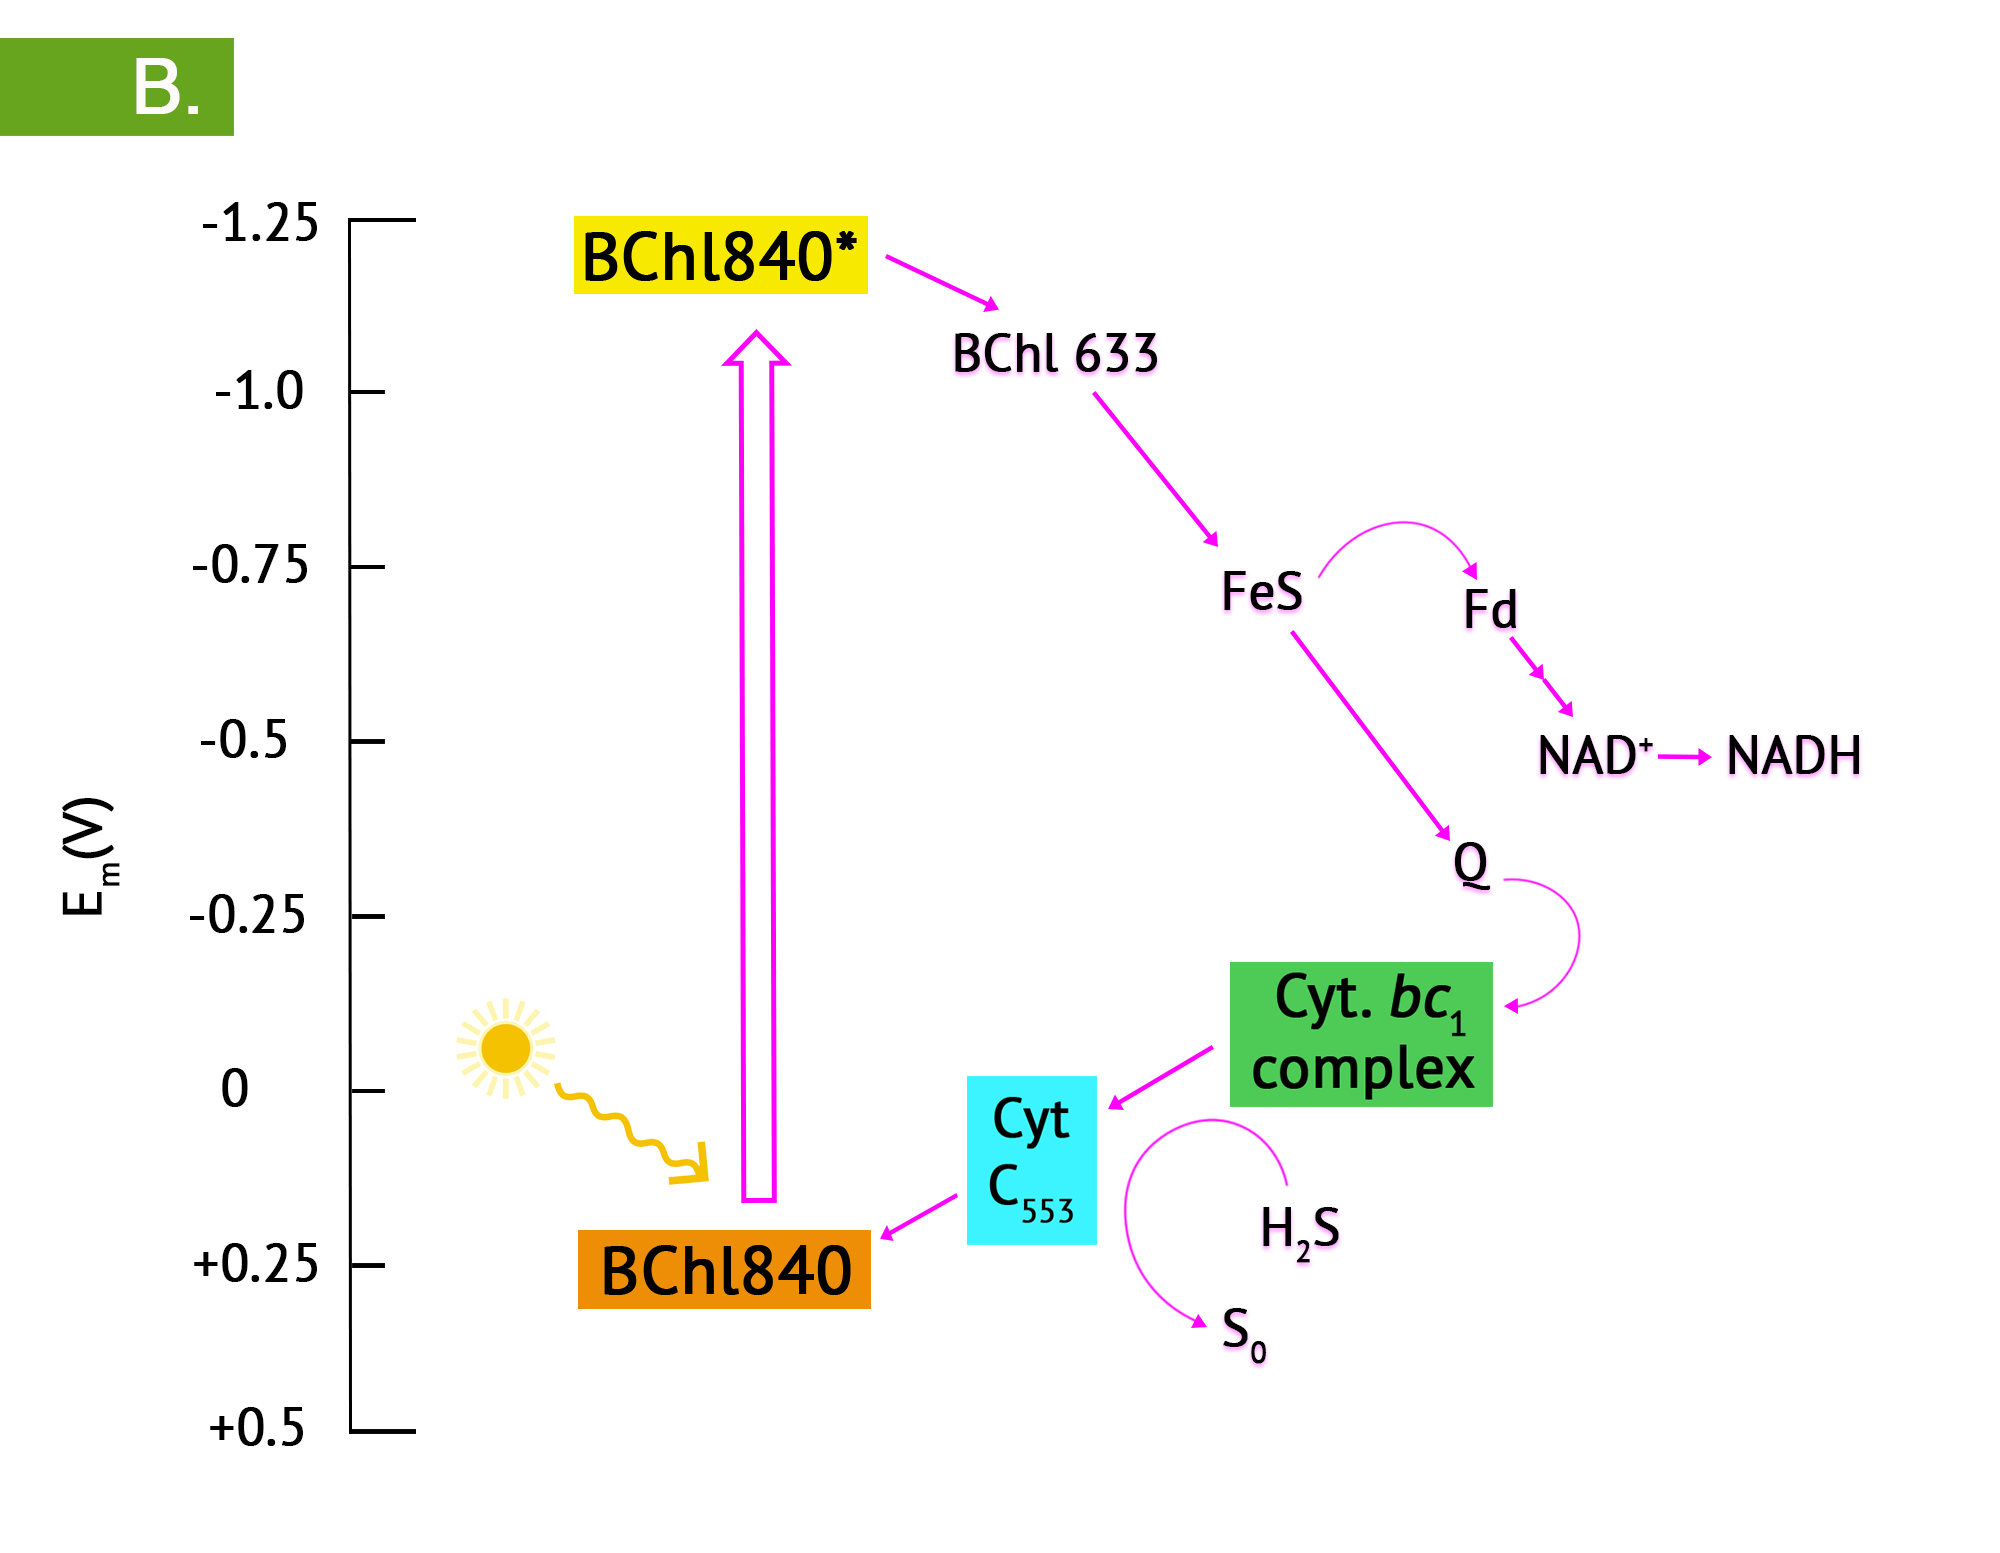 B - upon photoexcitation of the reaction centre bacteriochlorophyll, the strong reduction potential leads to the reduction of another BChl, an iron sulphur protein, then electrons either cycle back via quinones and cytochromes, or flow in an exergonic direction, to ferredoxin (Fd) and finally to NAD+. Noncyclic electron flow is accompanied by photolysis of sulphur compounds such as H2S.